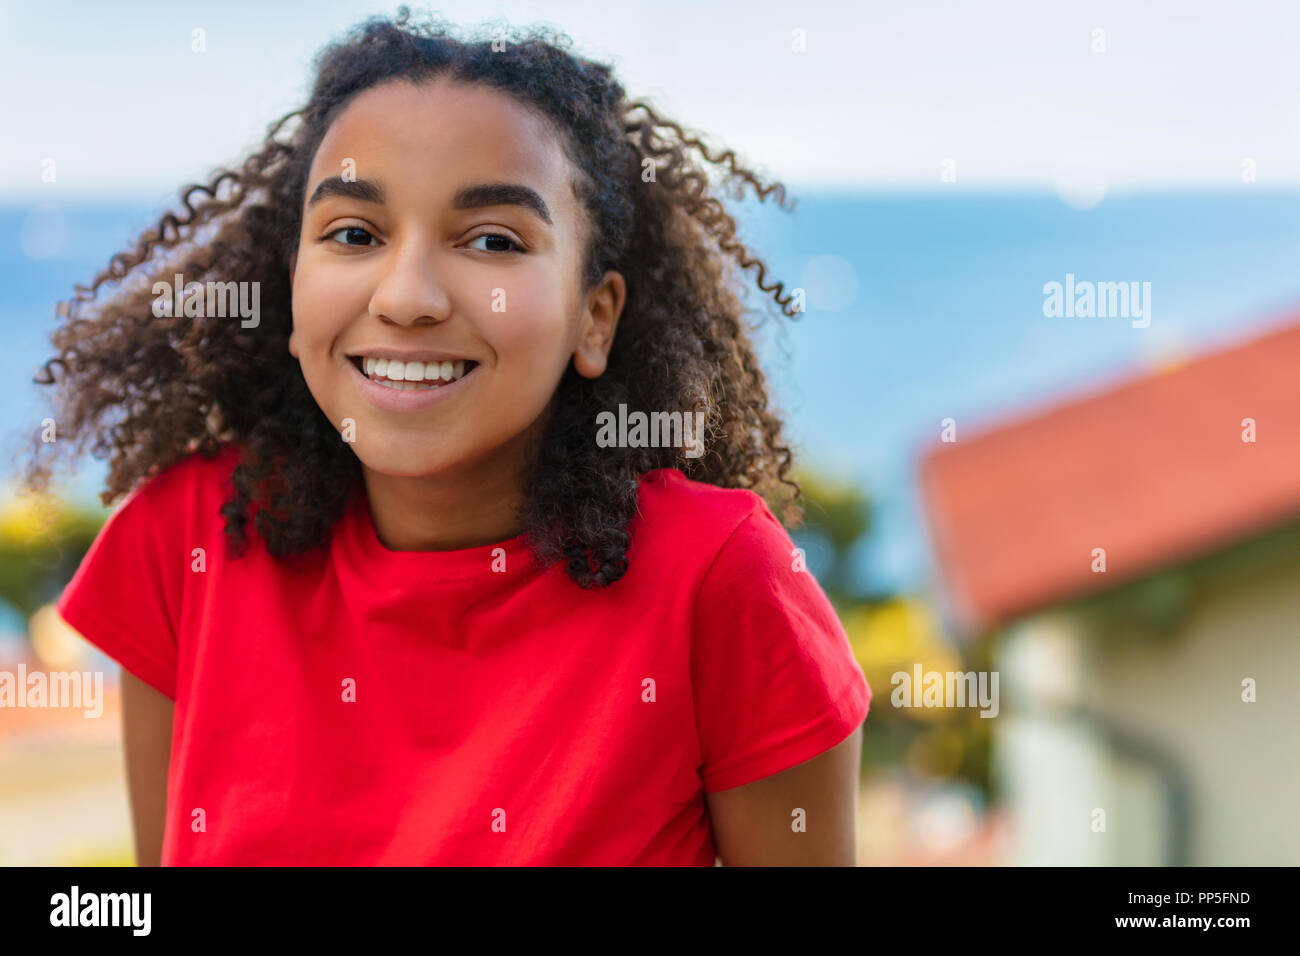 Perfect Teenager Part - 19: Outdoor portrait of beautiful happy mixed race African American girl  teenager female young woman smiling with perfect teeth and the sea  coastline behi